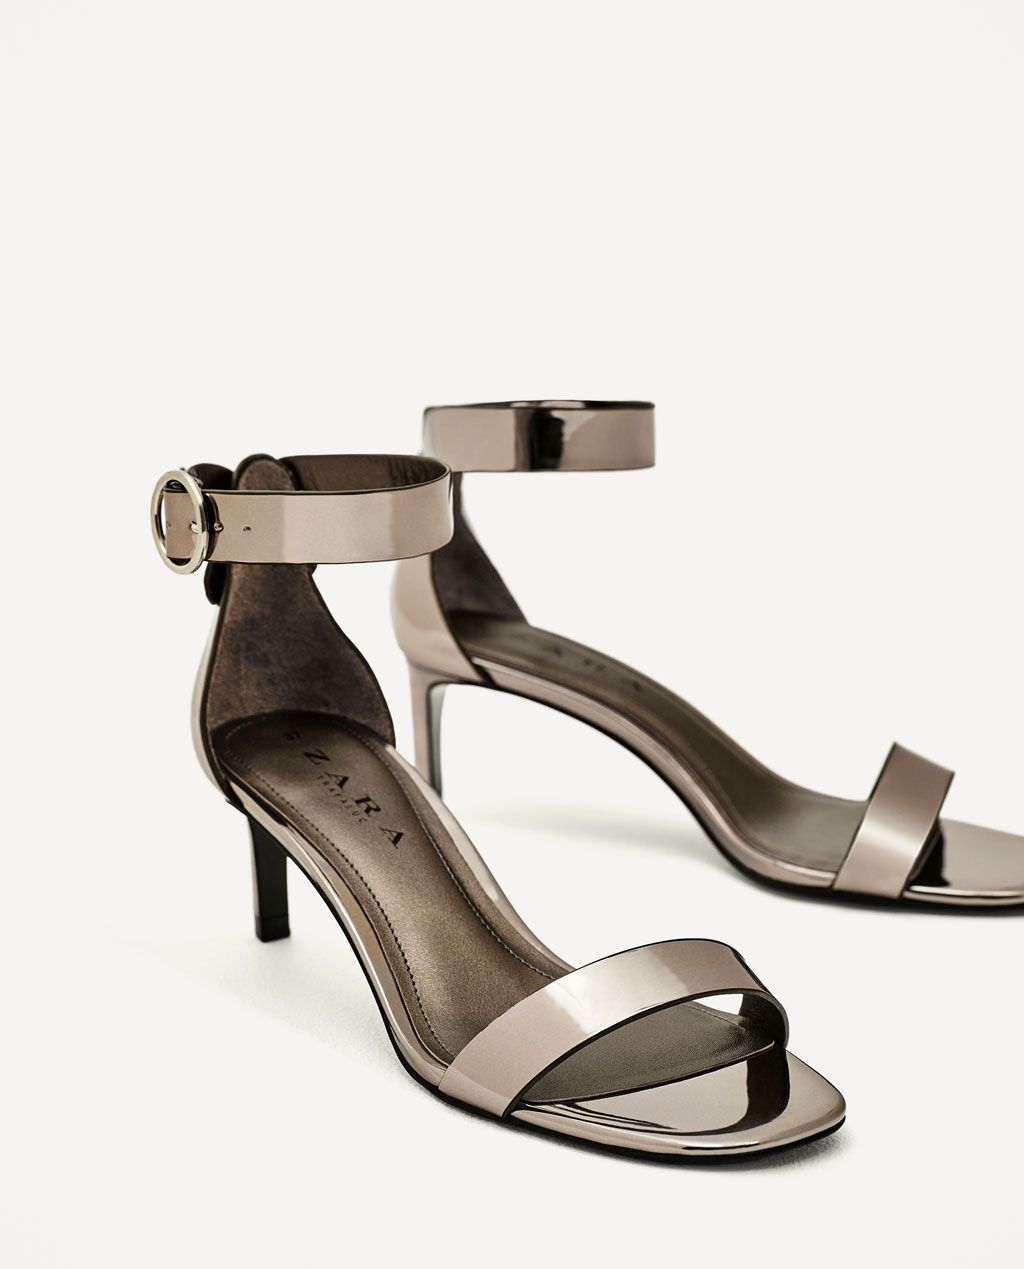 a8e37e10460 ZARA - SALE - MEDIUM-HEELED SANDAL WITH BUCKLE